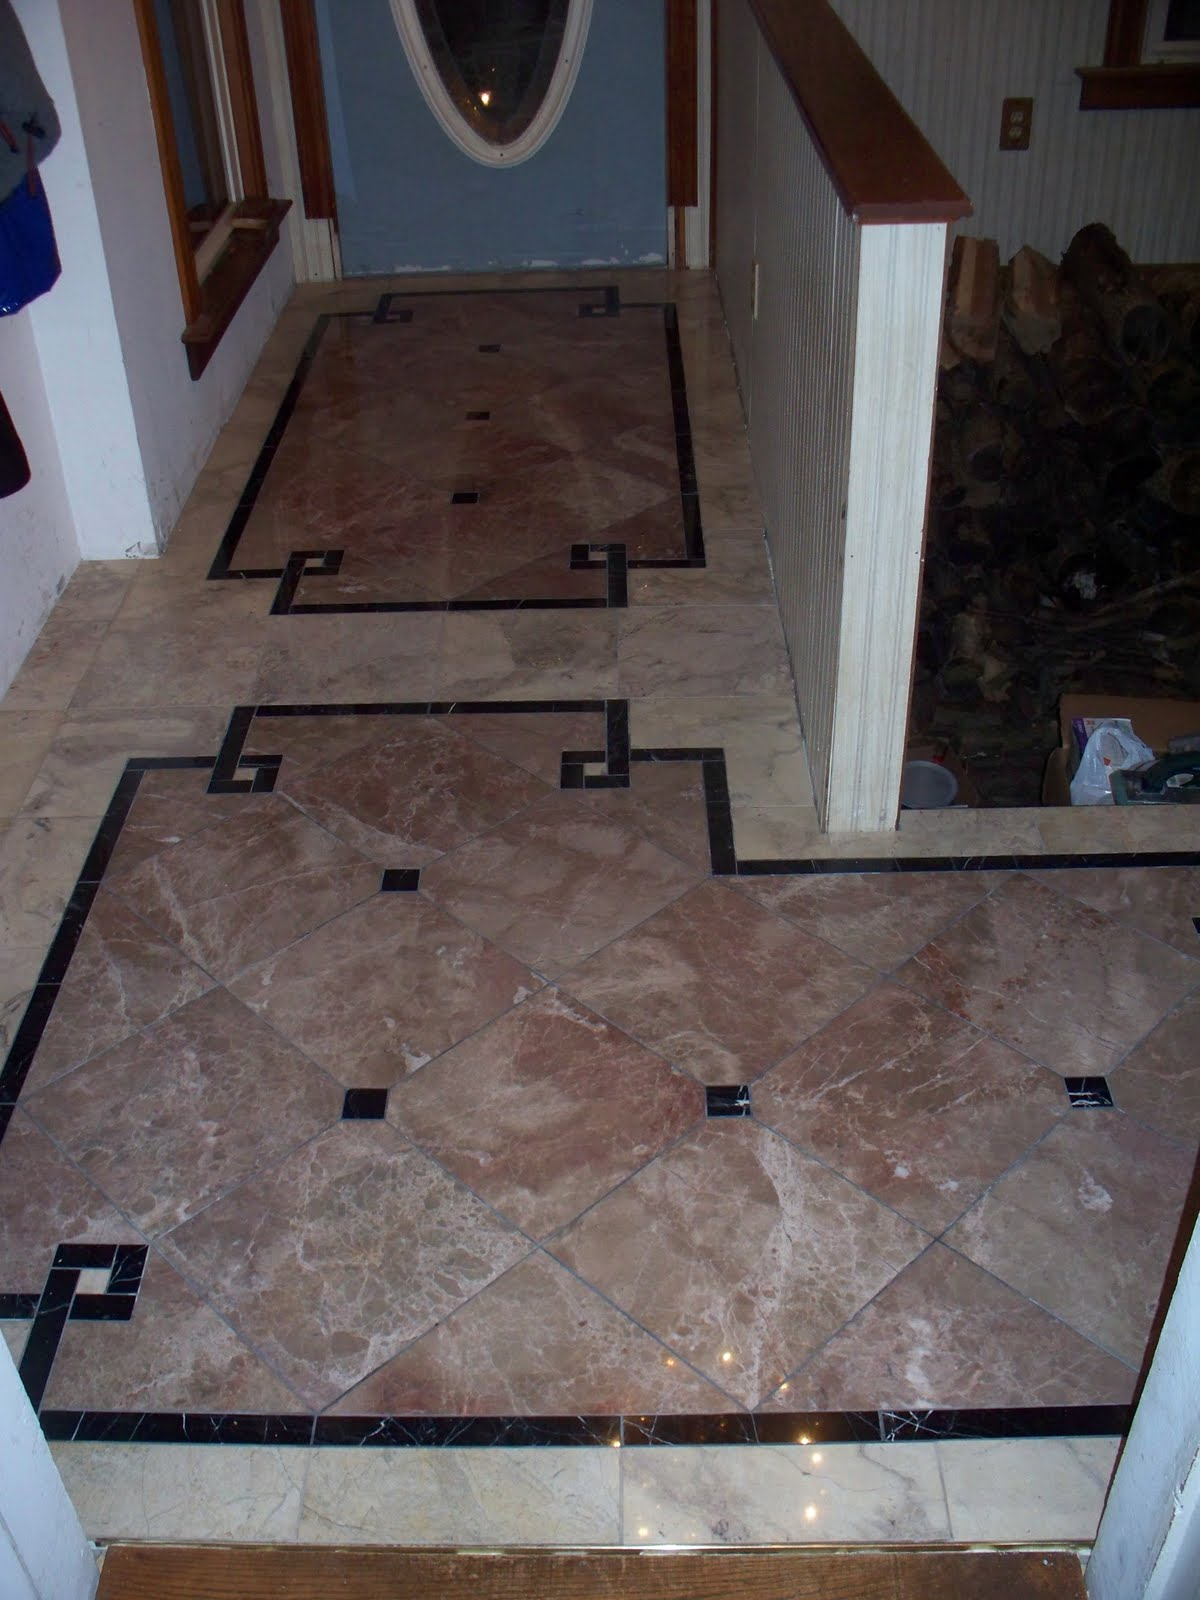 Old Victorian House: Marble Floor Tile - Entryway